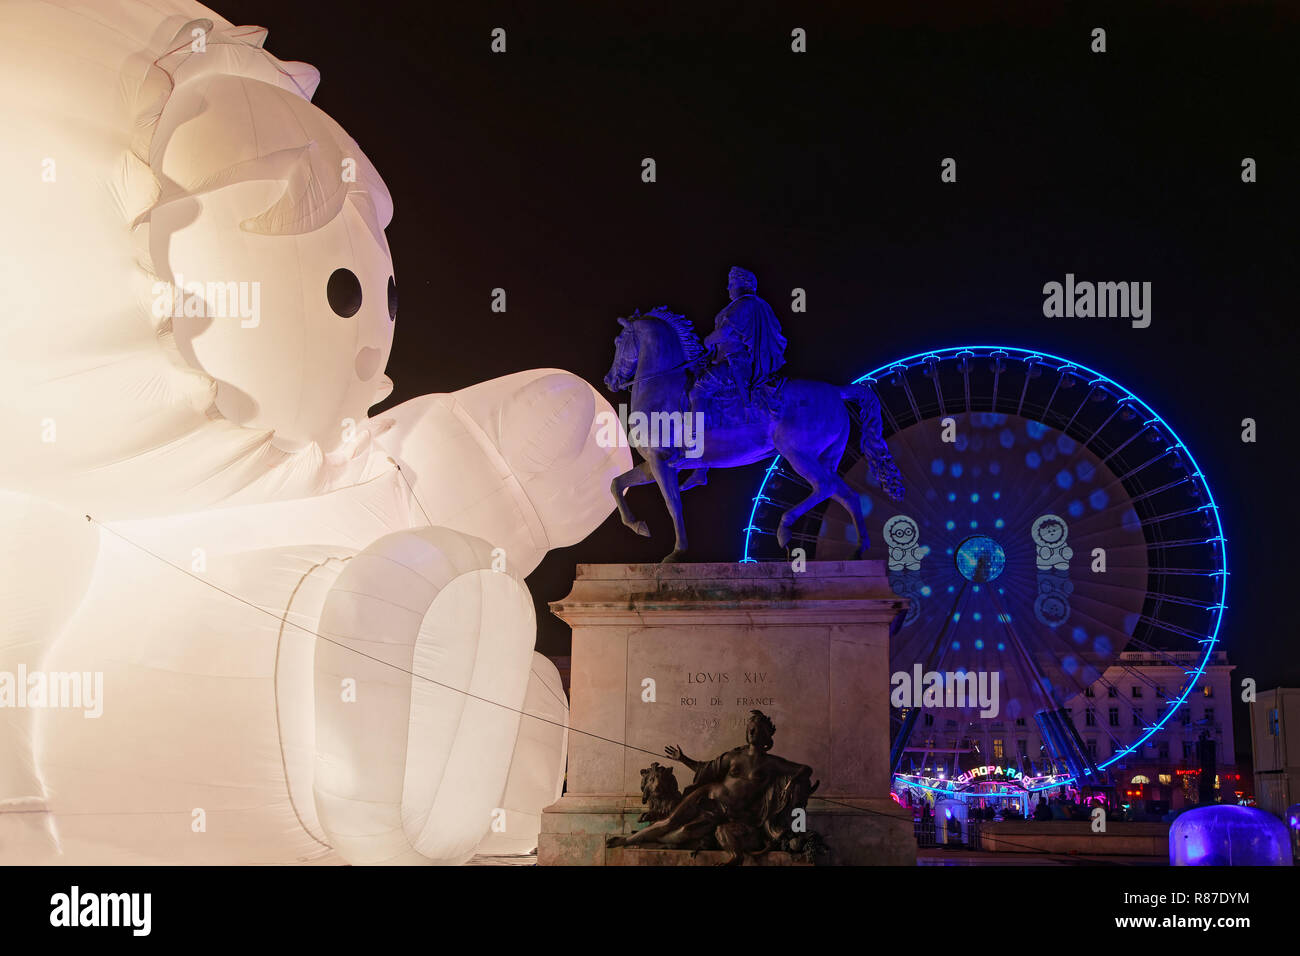 LYON, FRANCE, December 4, 2018 : Festival of the lights in Lyon. For 4 nights, different artists light up buildings, streets mixing poetry, splendor o - Stock Image